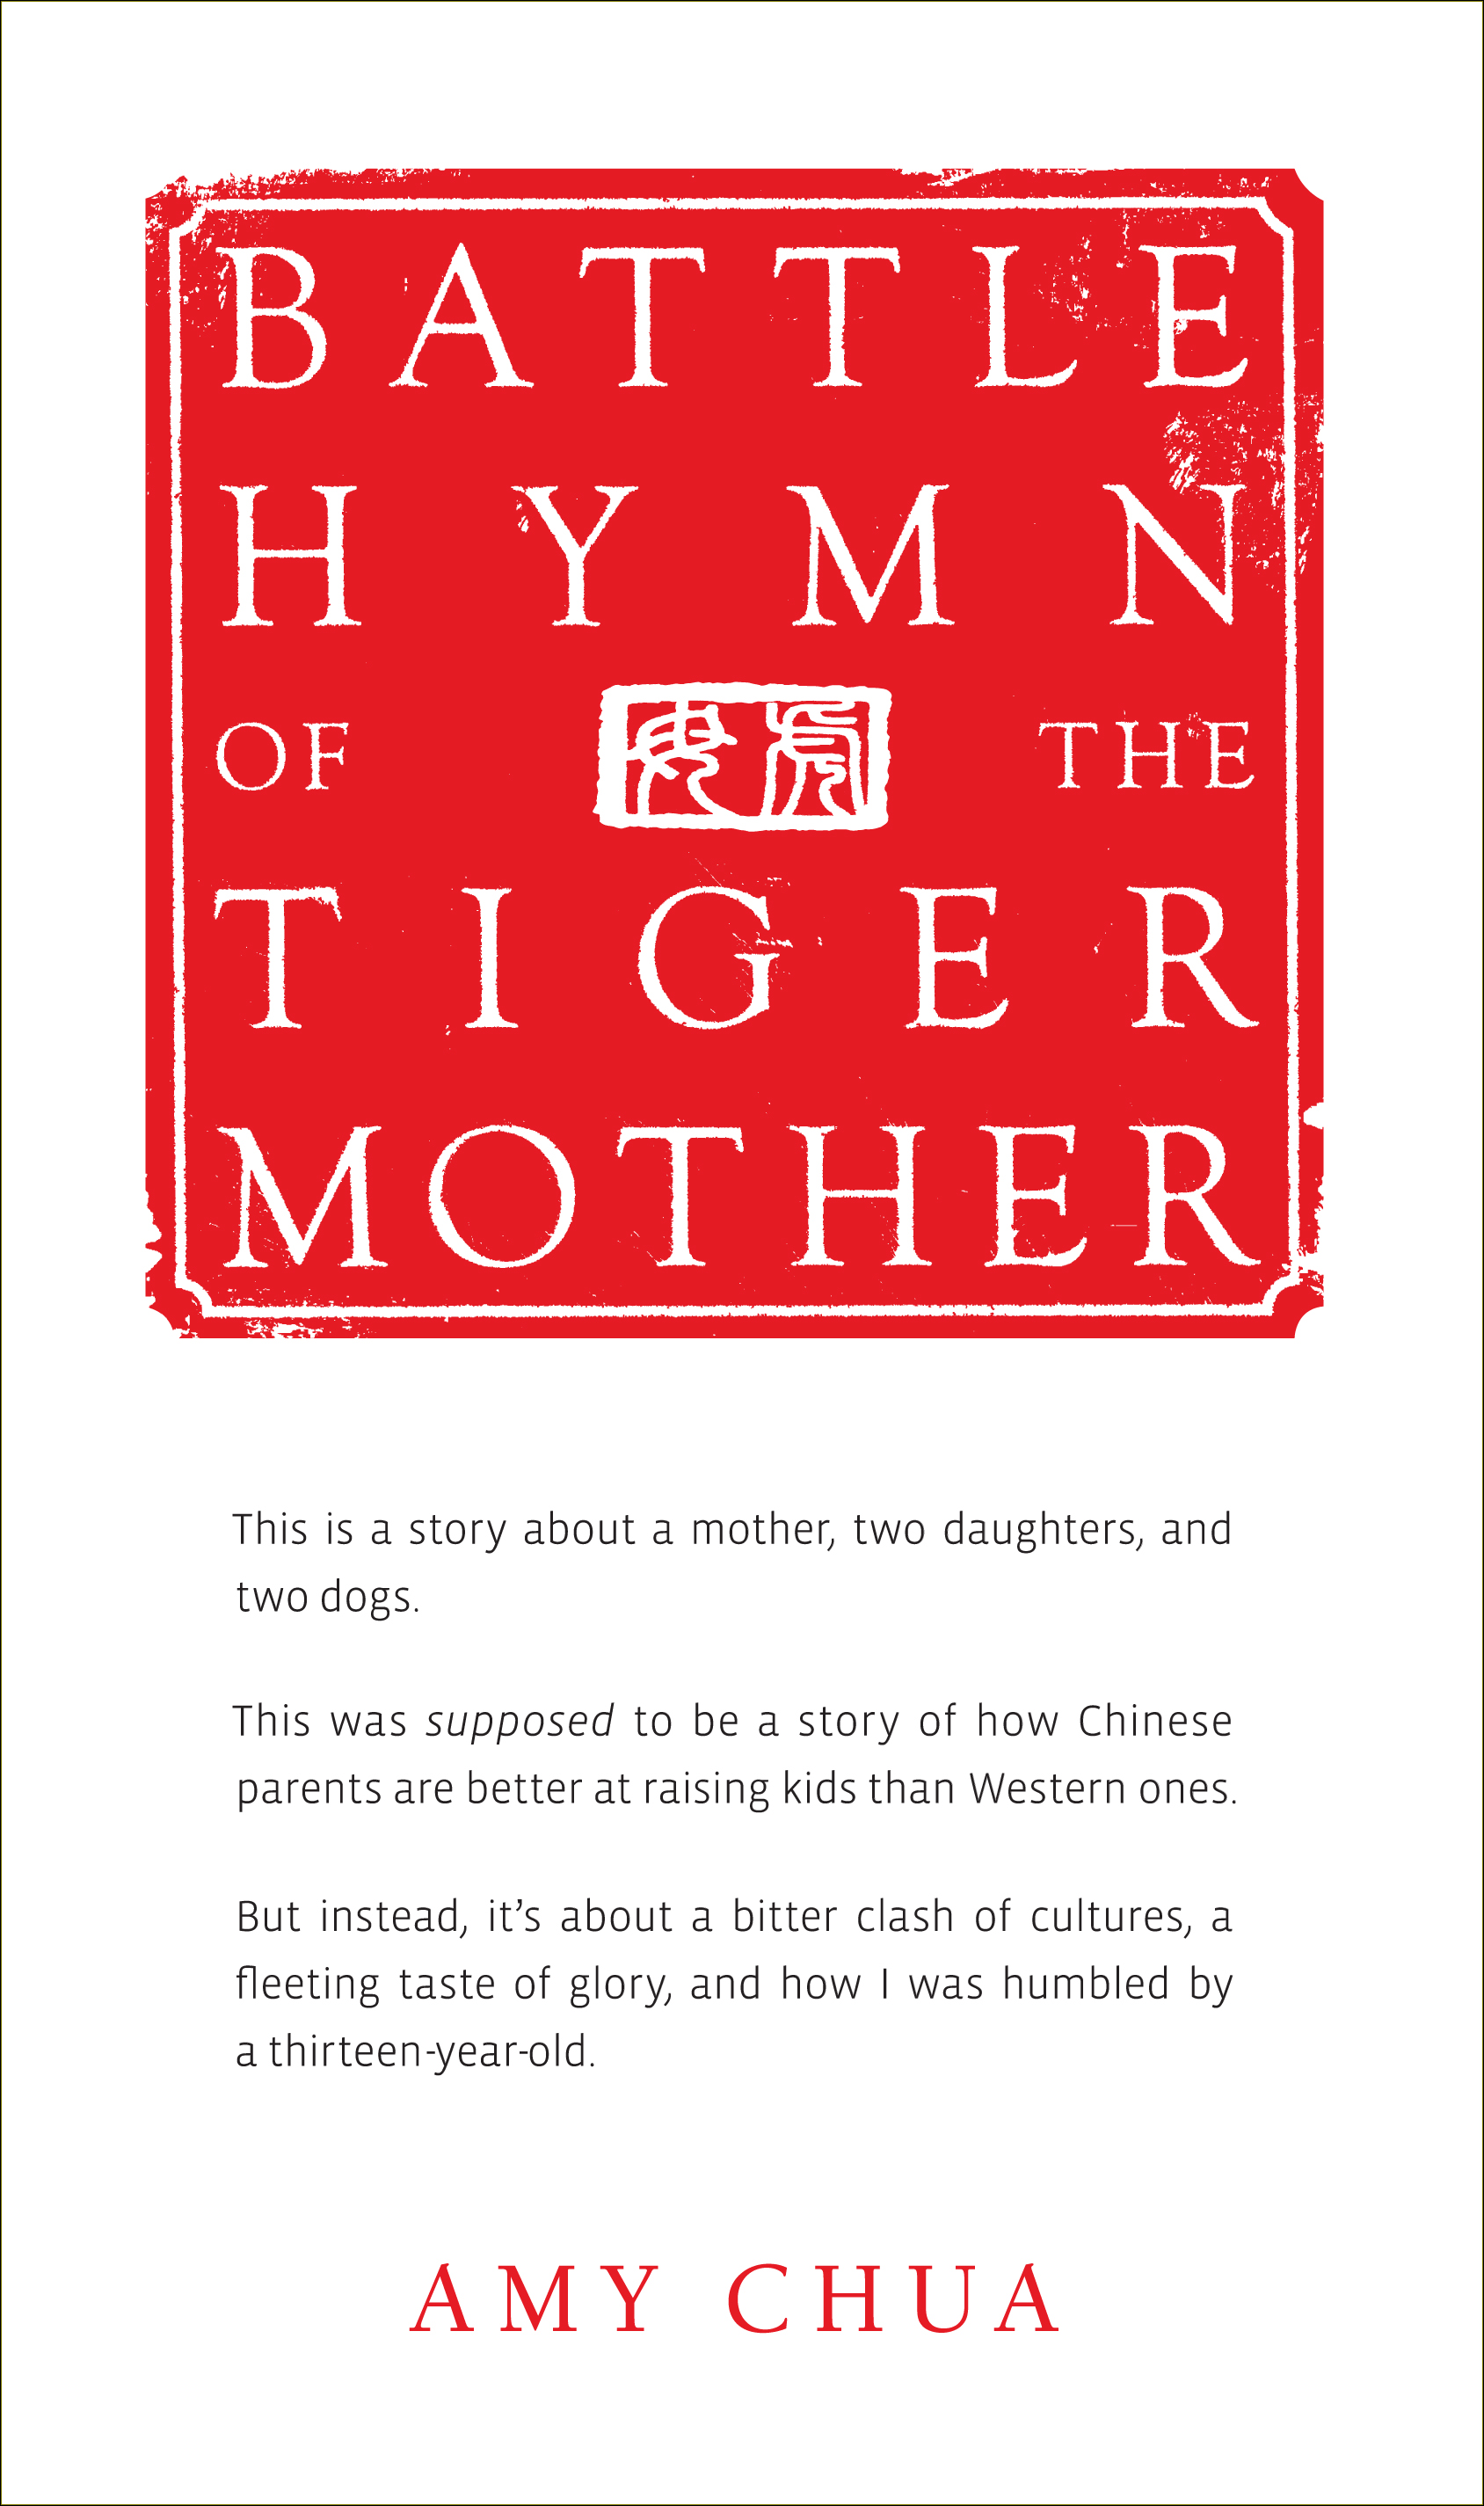 amy chua essay why chinese mothers are superior